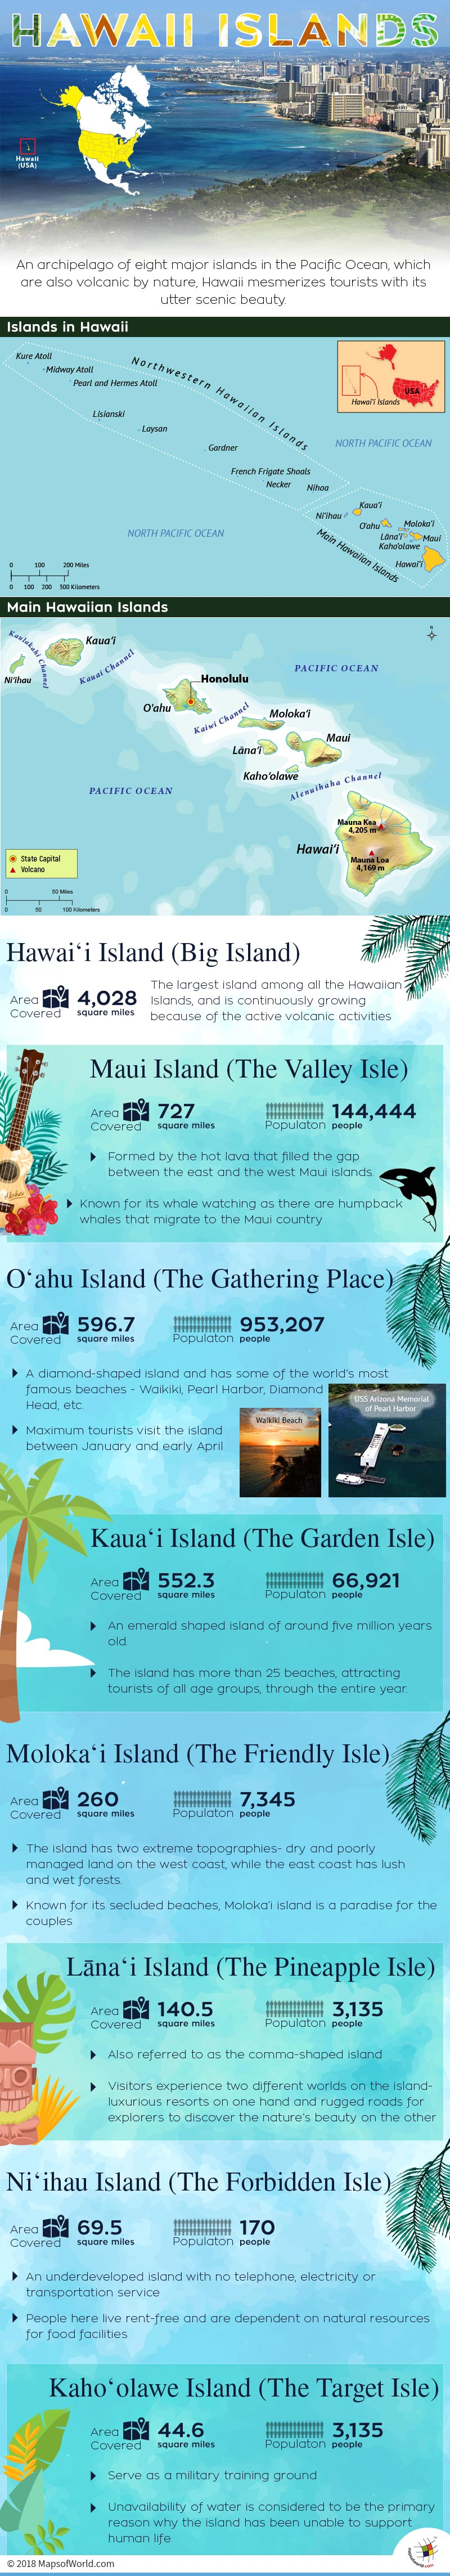 Infographic describing Hawaii Islands